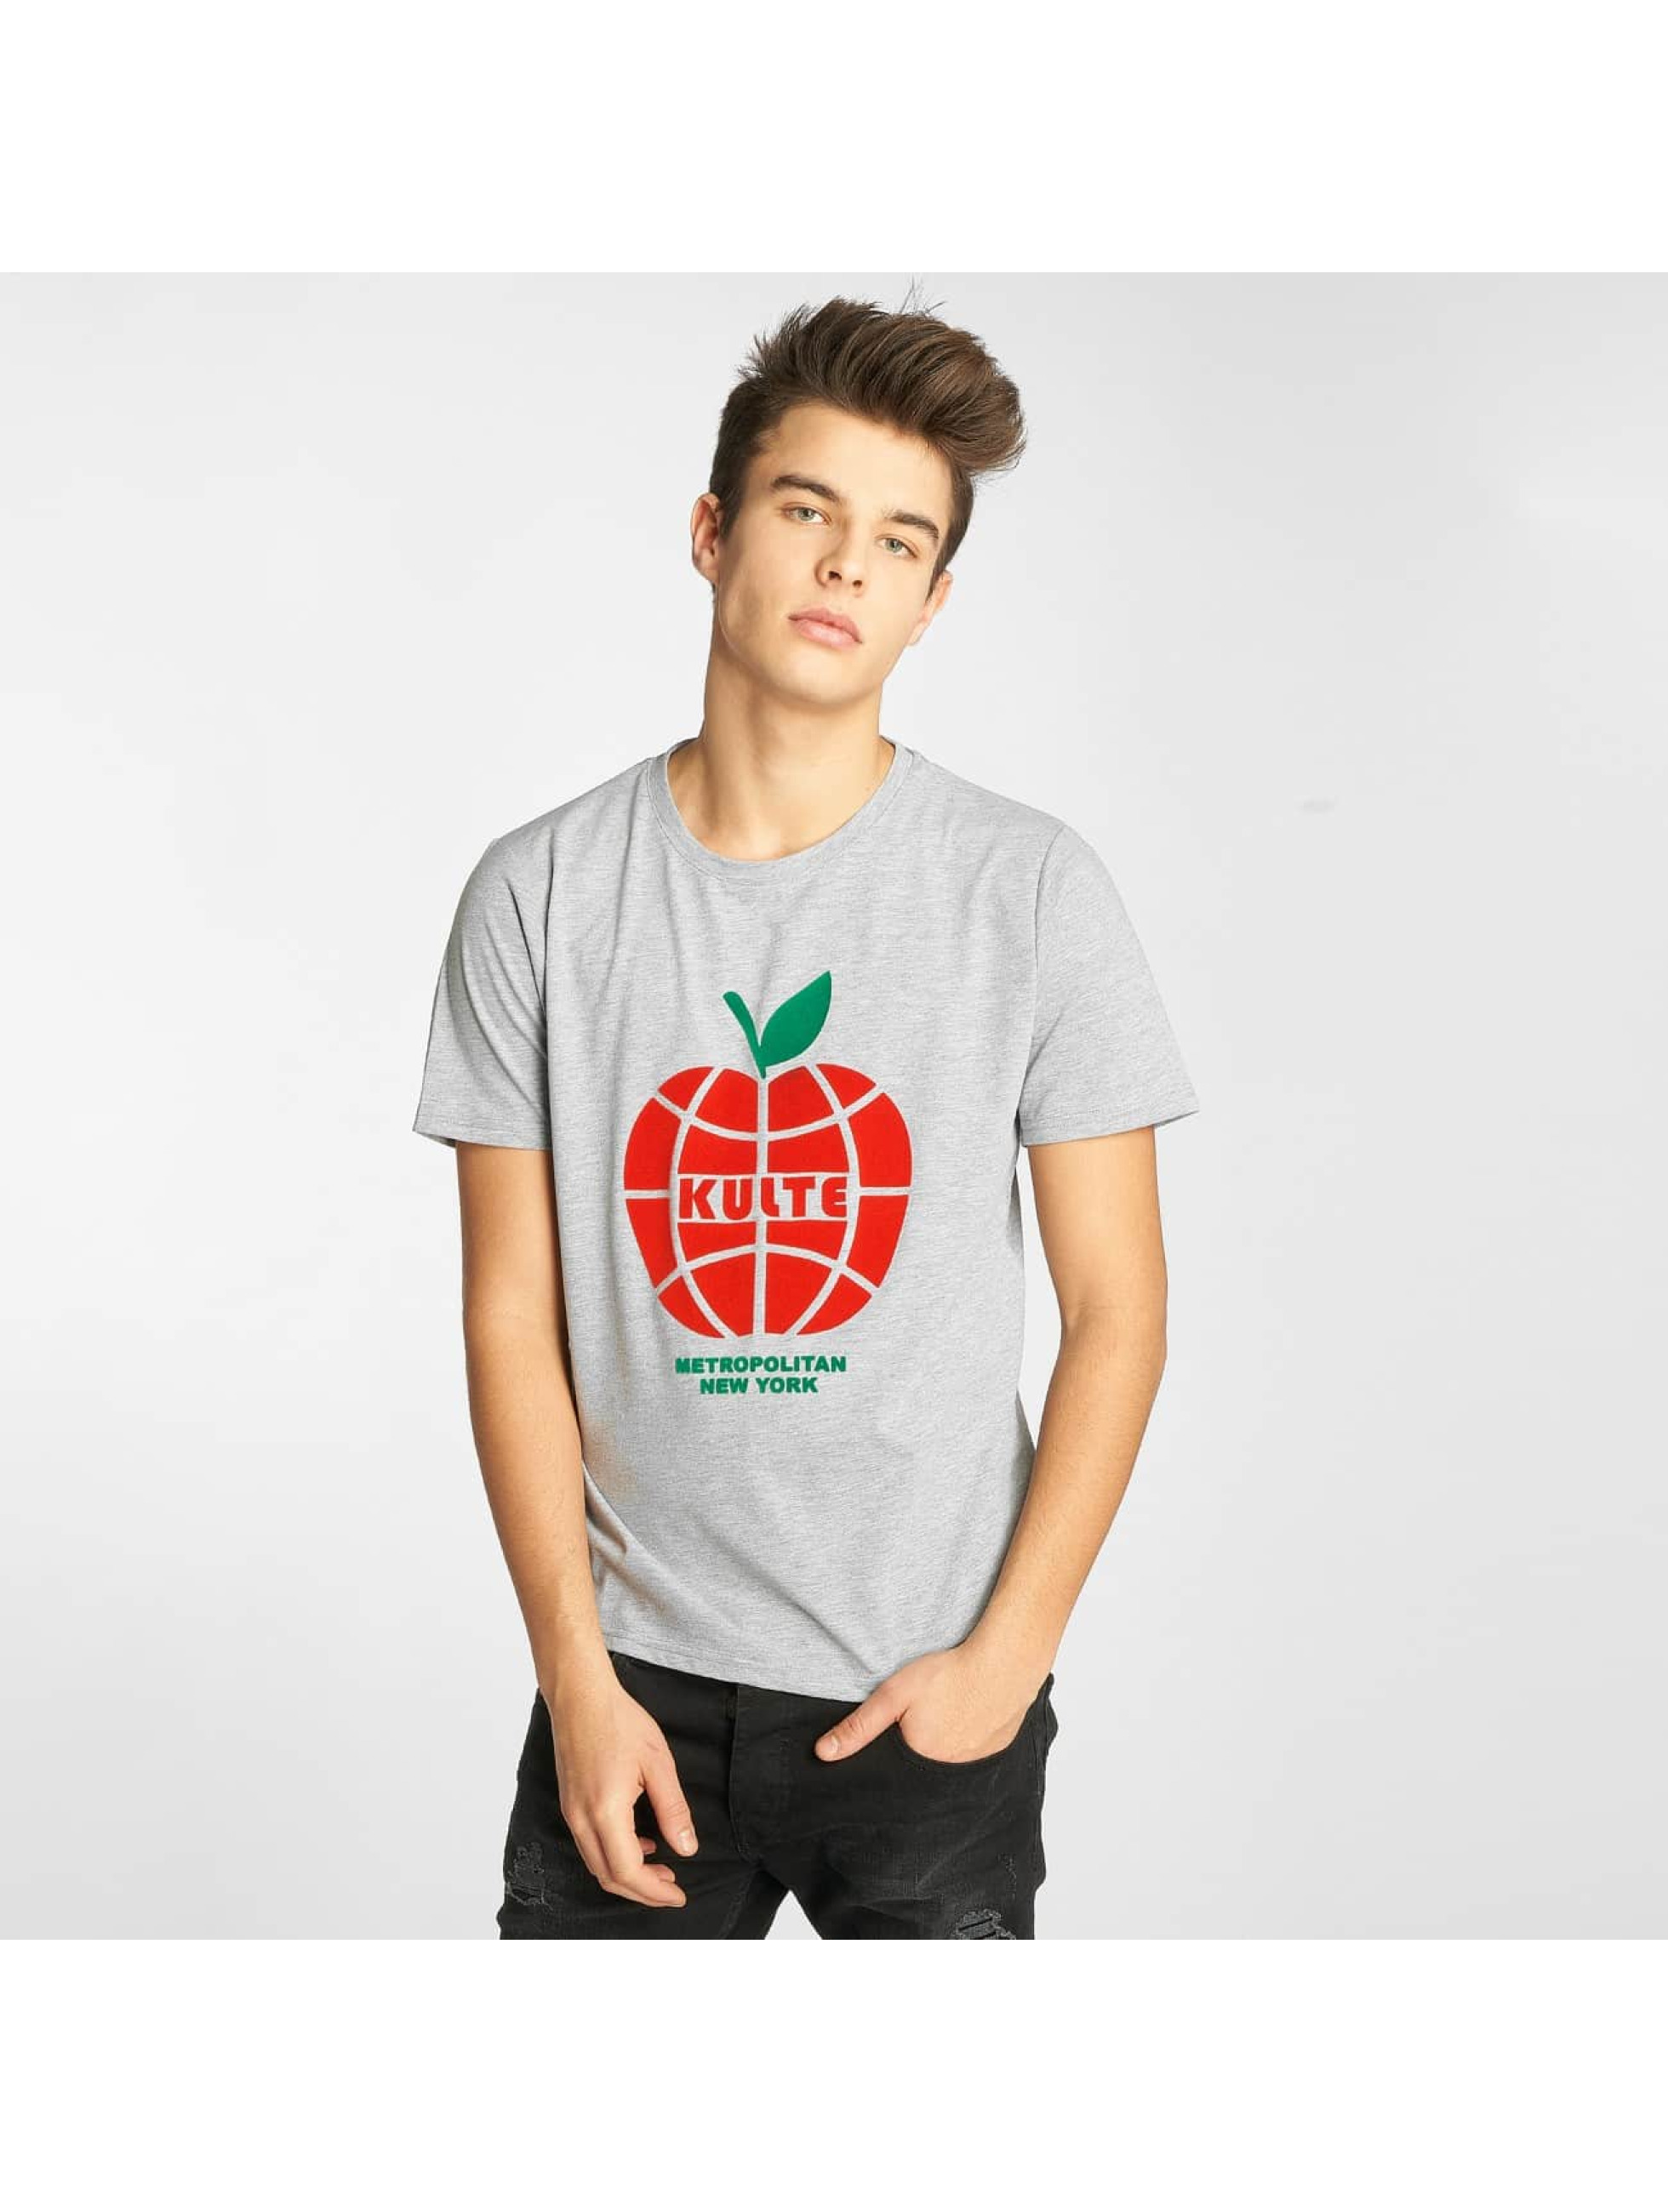 Kulte Camiseta New York gris